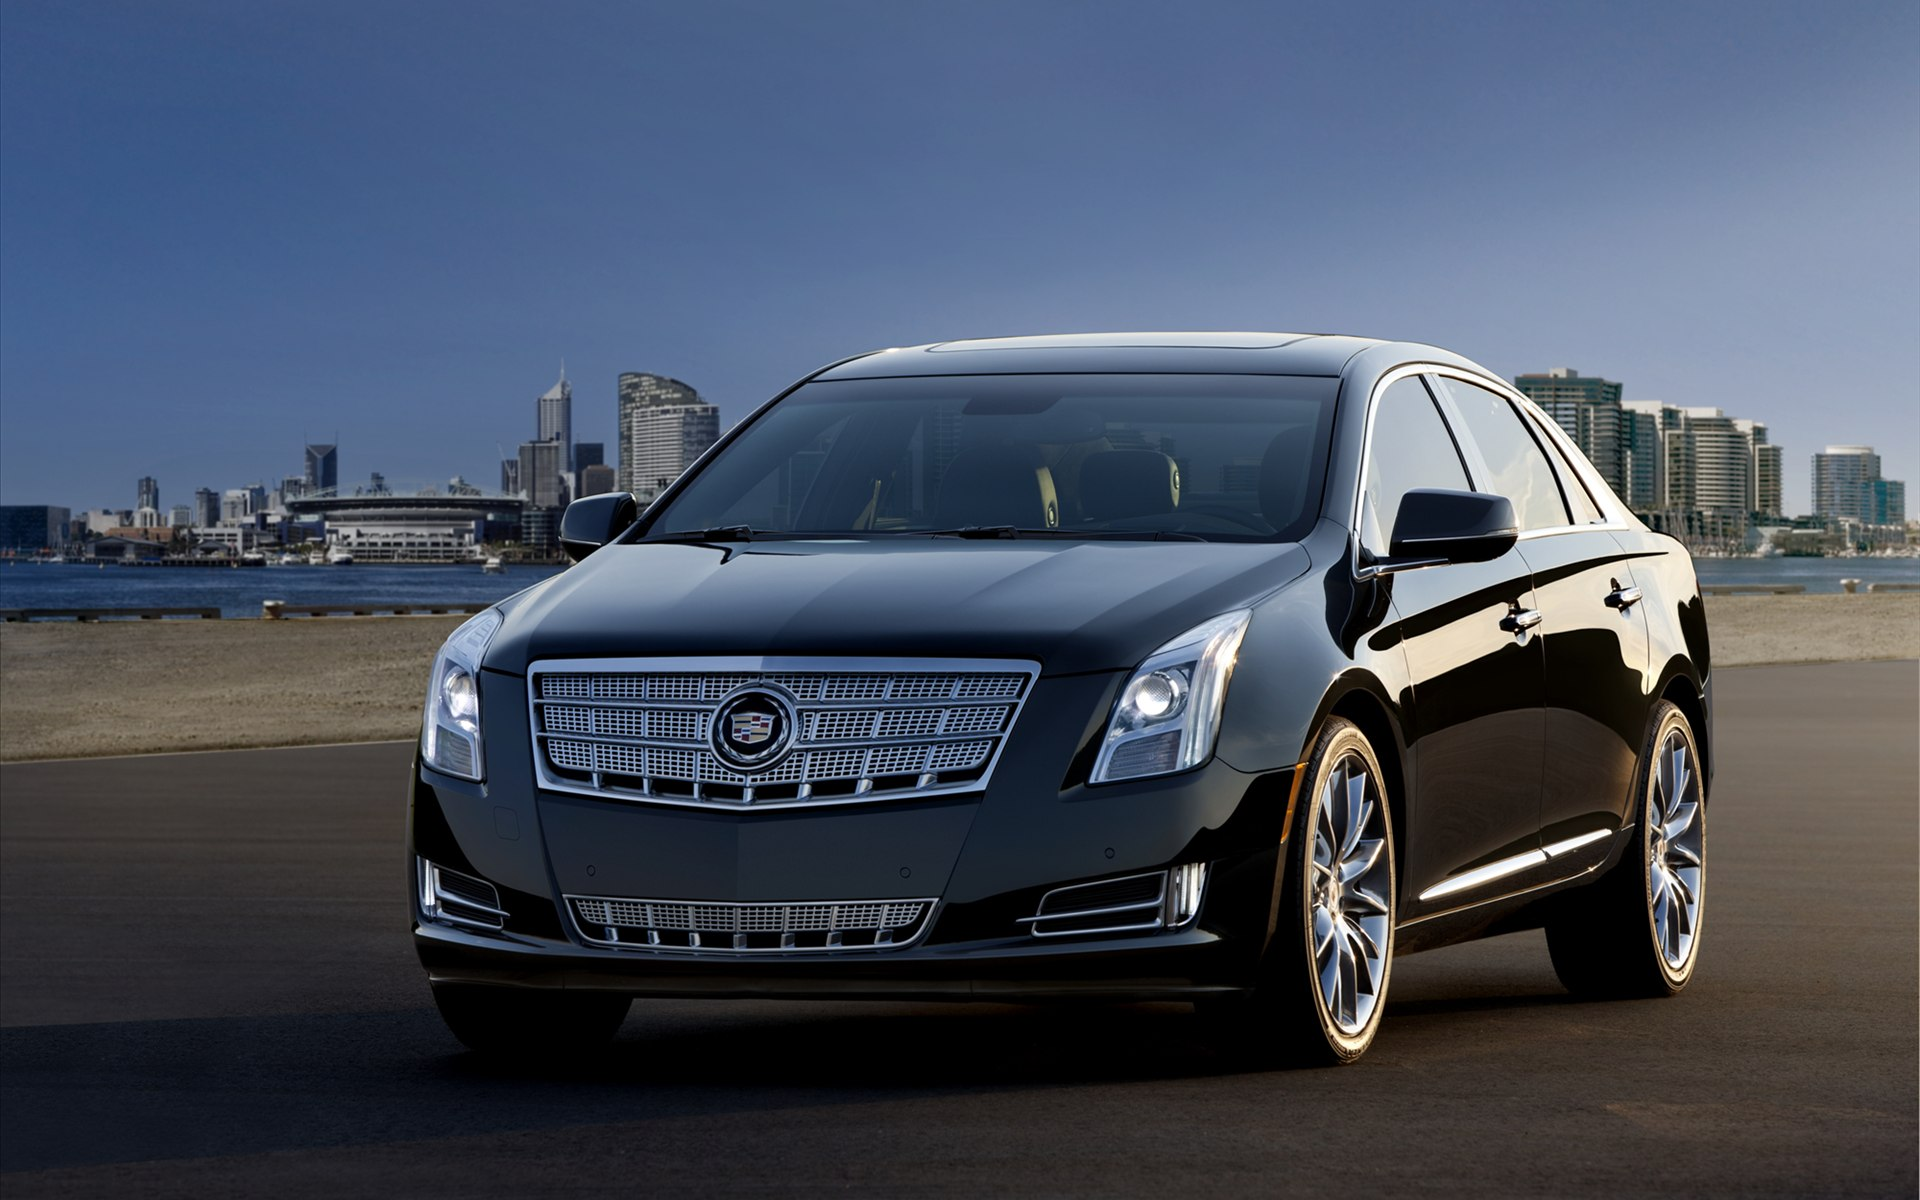 cadillac xts 2013 wallpaper hd car wallpapers id 2345. Black Bedroom Furniture Sets. Home Design Ideas